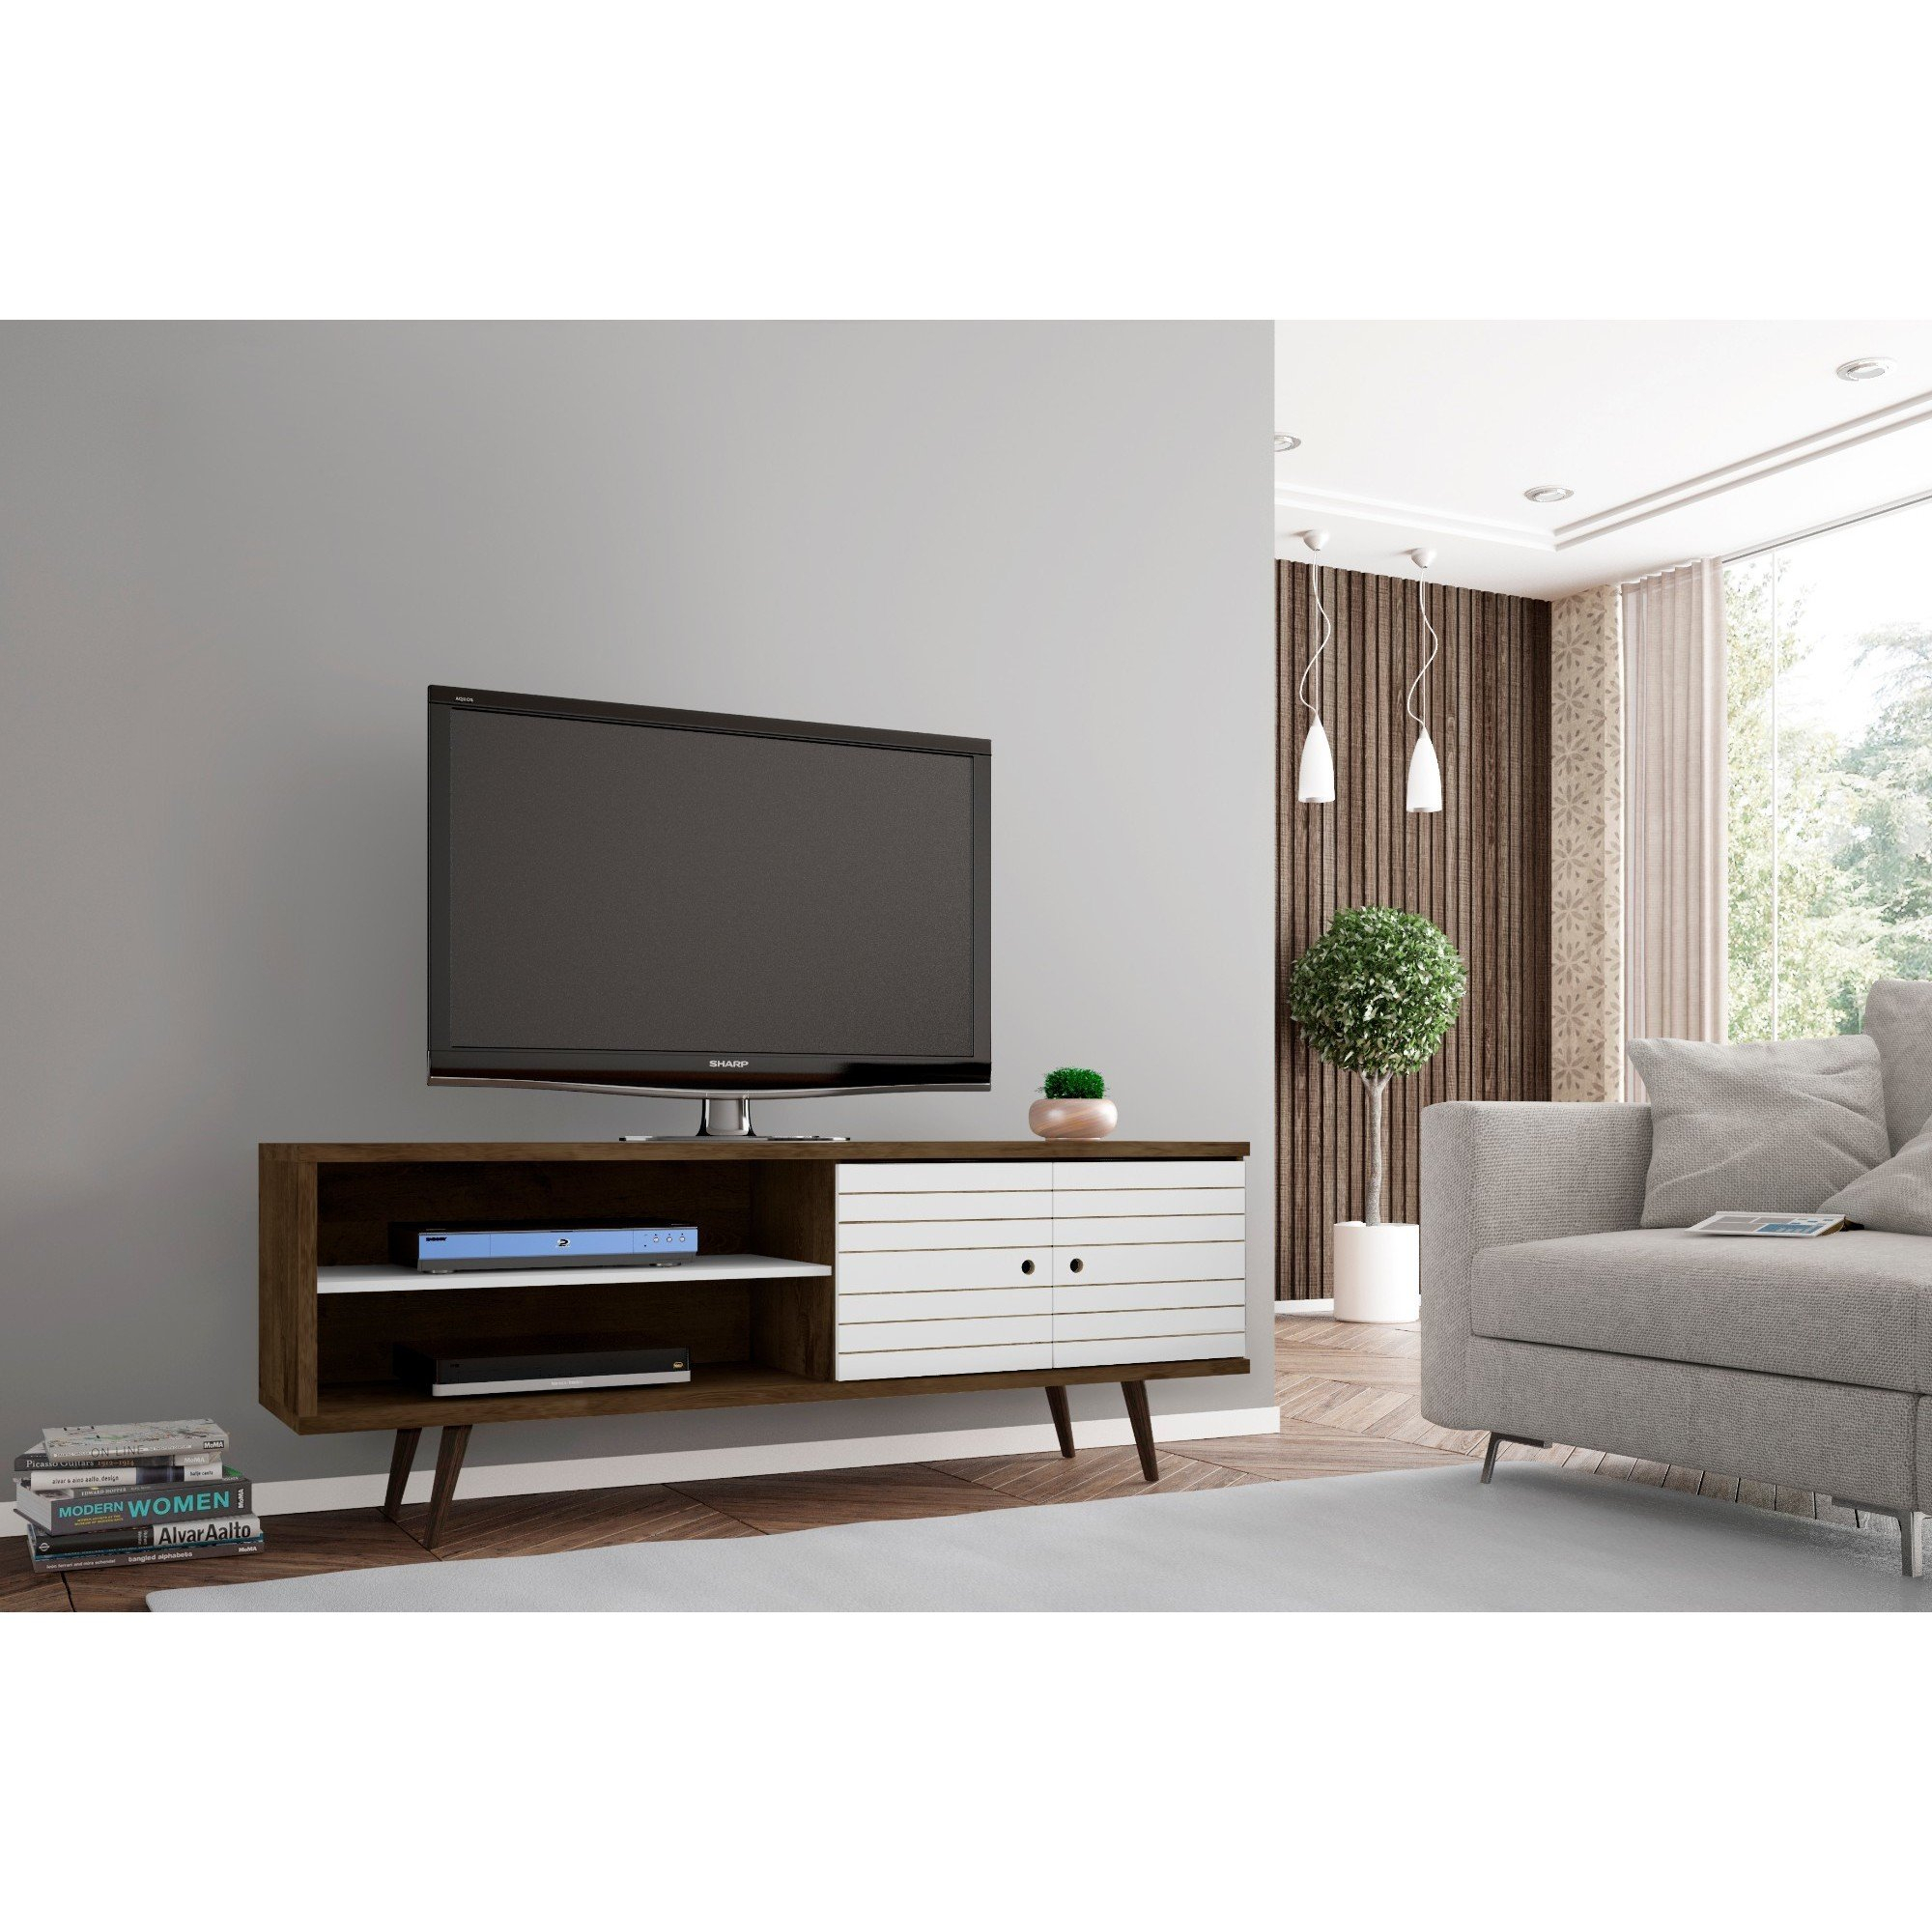 Shop Carson Carrington Sortland Wooden Modern Tv Stand – On Sale Throughout Canyon 64 Inch Tv Stands (View 11 of 30)